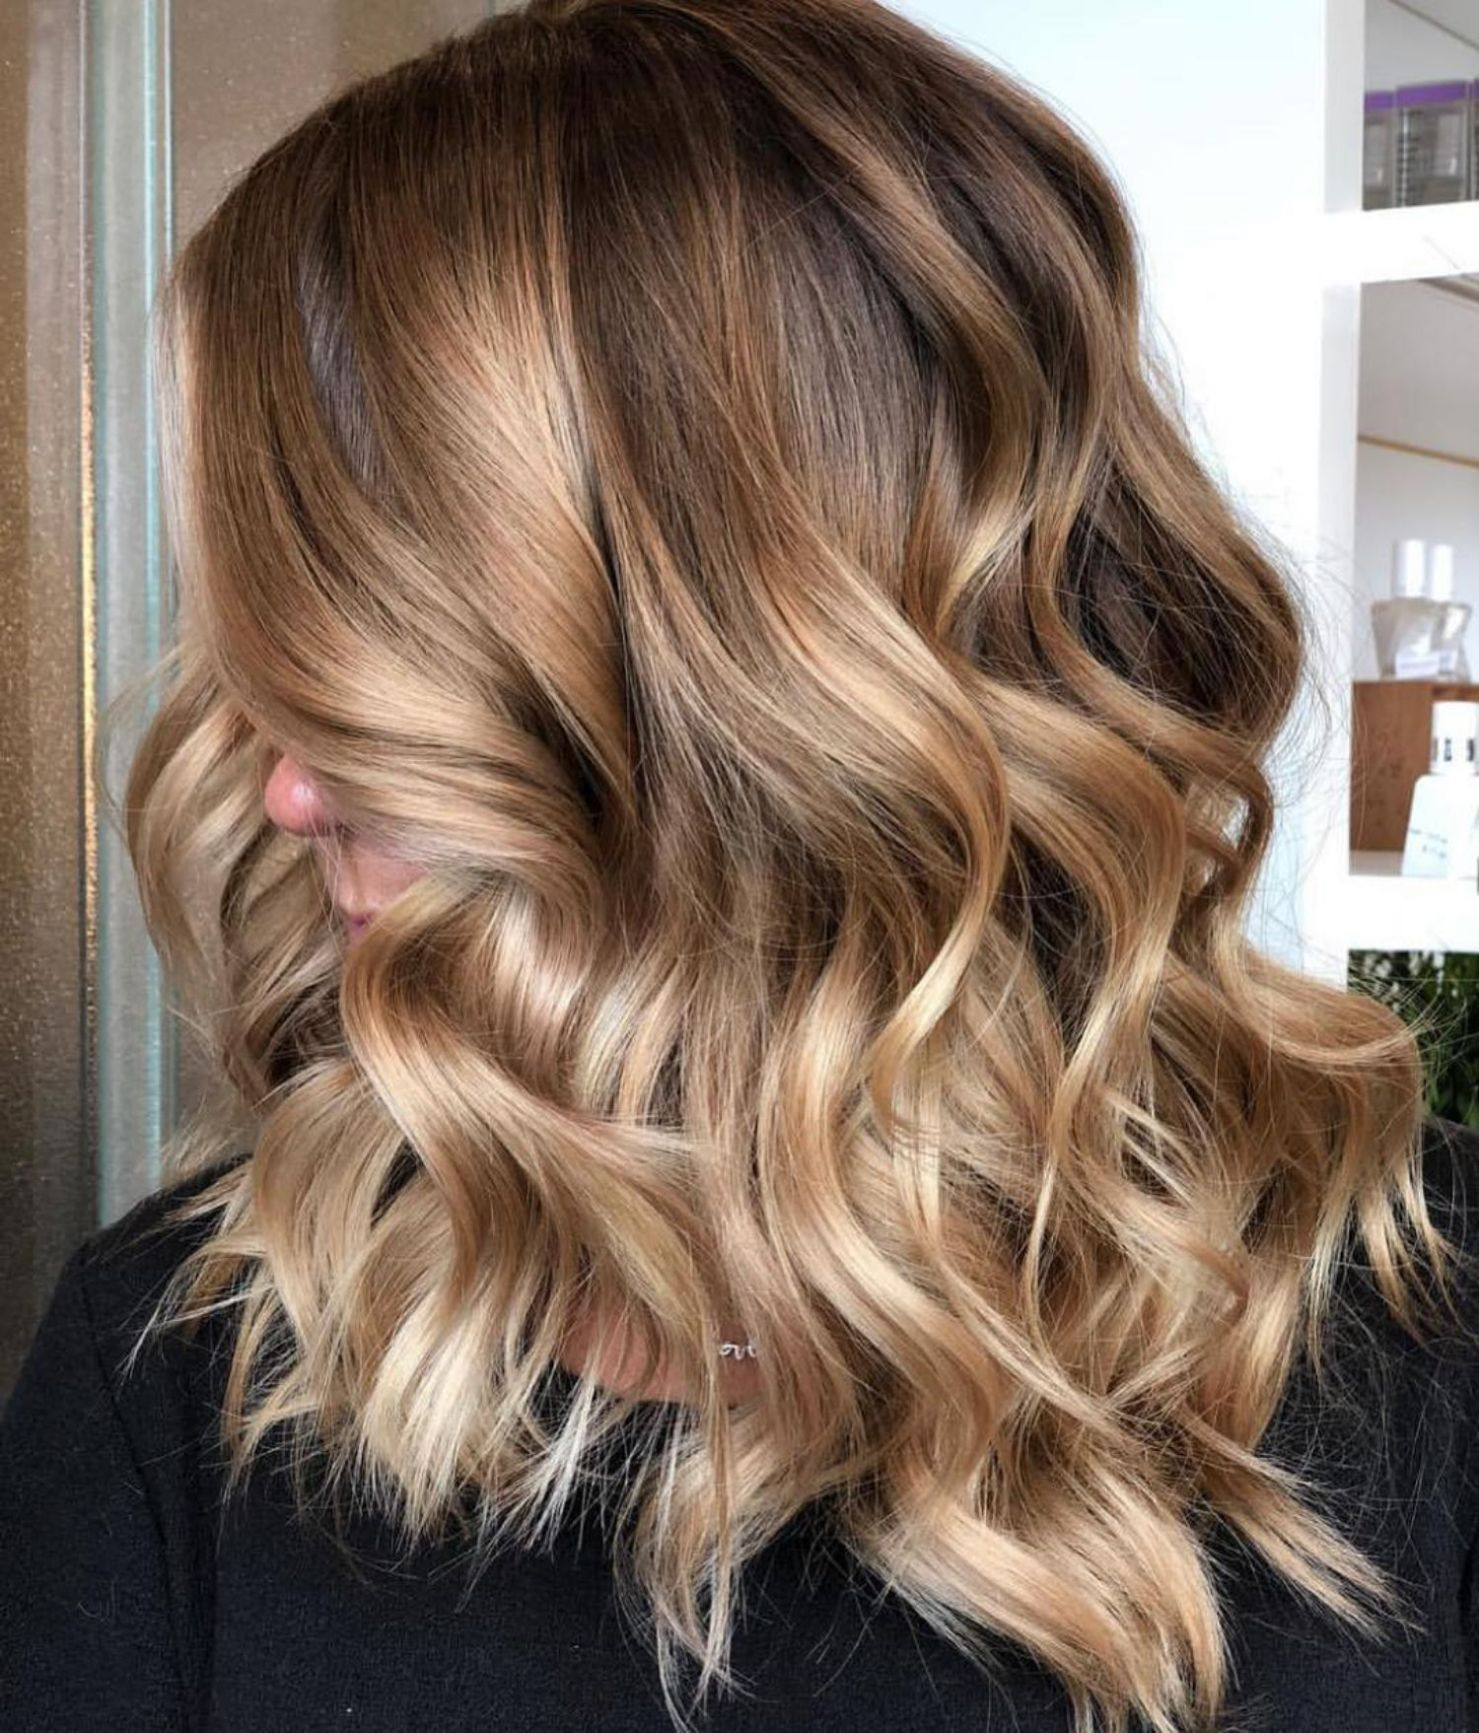 50 Ideas for Light Brown Hair with Highlights and Lowlights #caramelbalayage